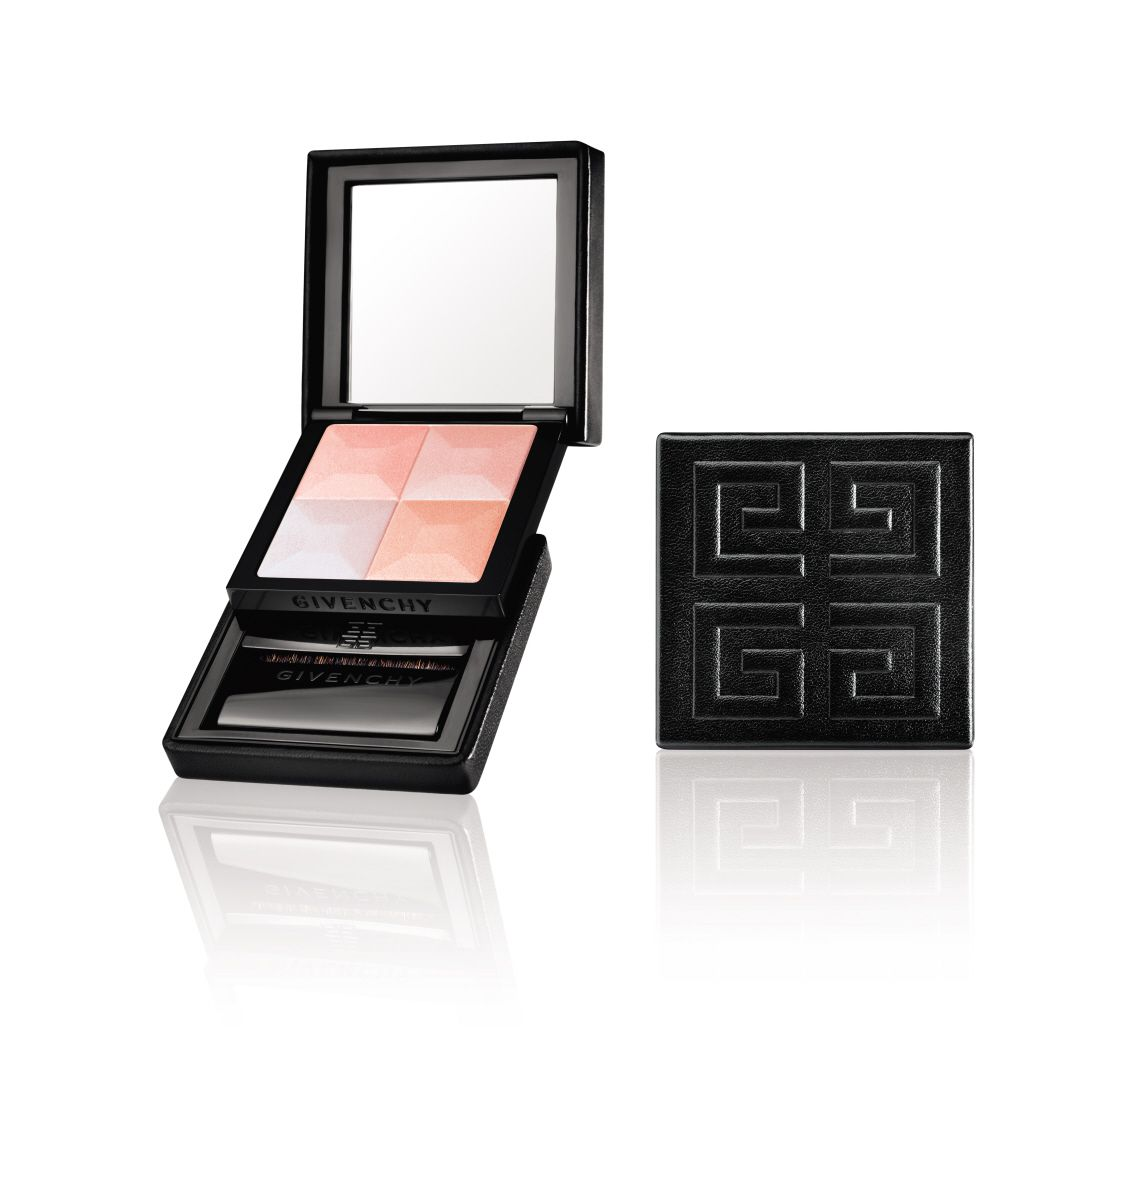 LUMINOUS SKIN WITH A HINT OF ROSY HOLIDAY CHEER IN ONE CHIC COMPACT  Winter's cool clear air infuses the skin with the prettiest pink flush. It's the perfect rosy glow that's nearly impossible to duplicate. That is, until now…